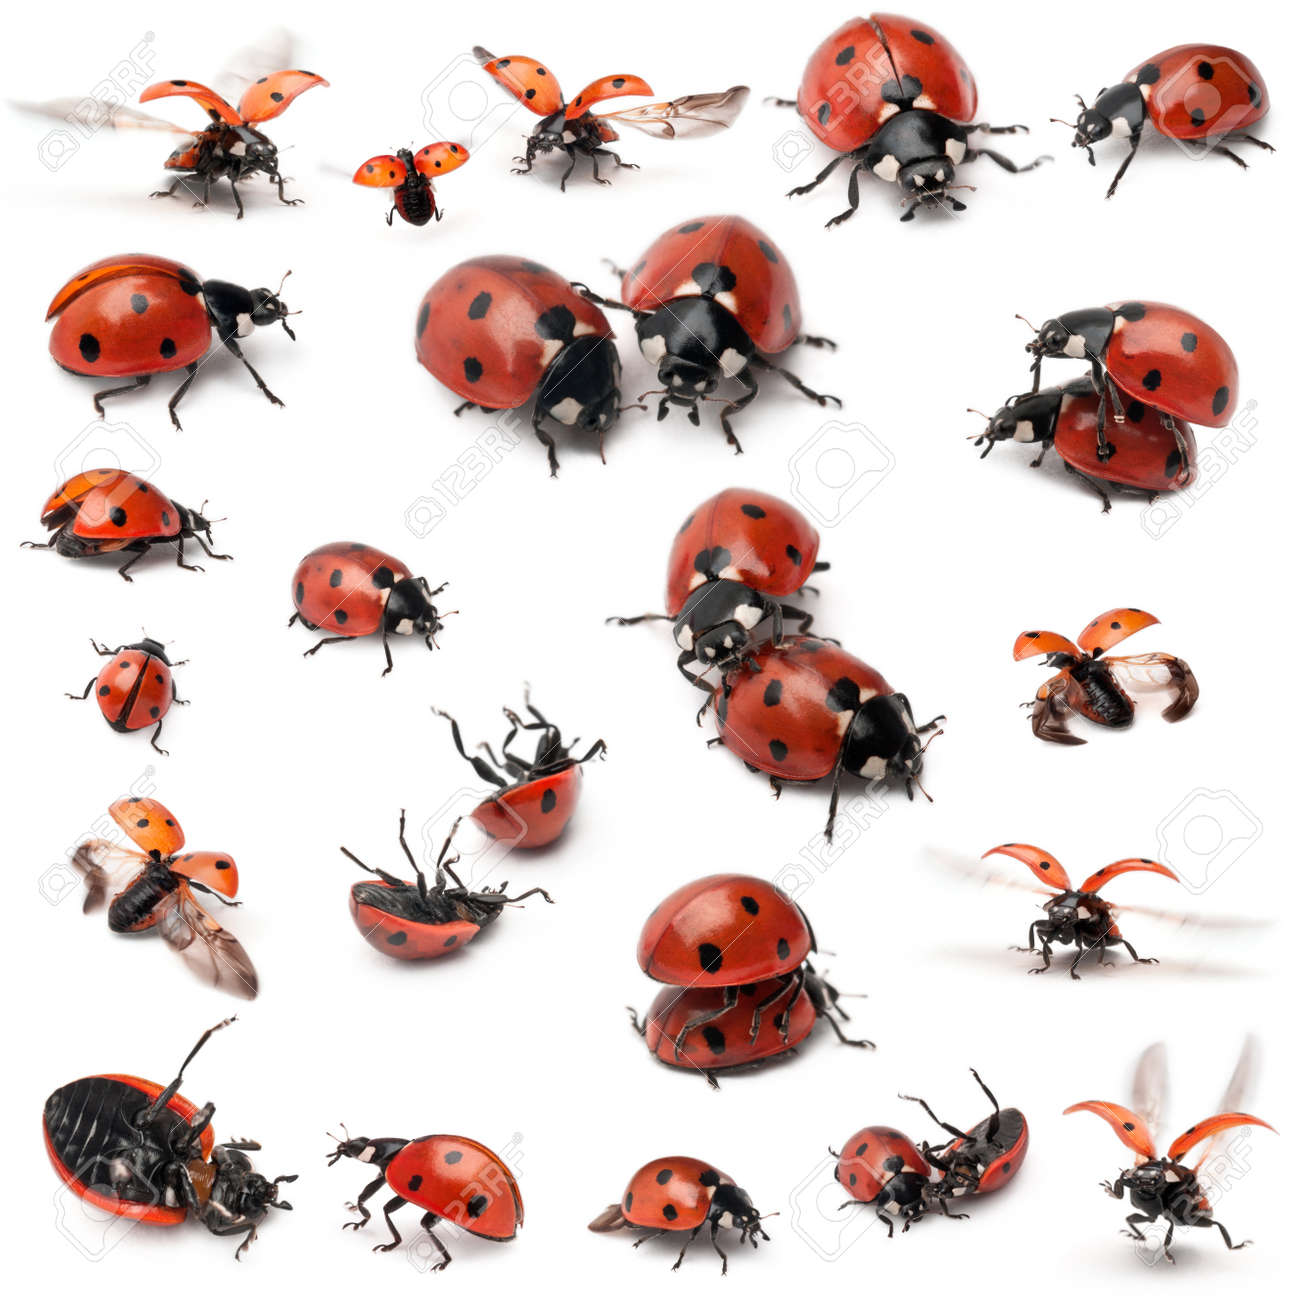 Collection of Seven-spot ladybirds, Coccinella septempunctata, in front of white background - 11183204